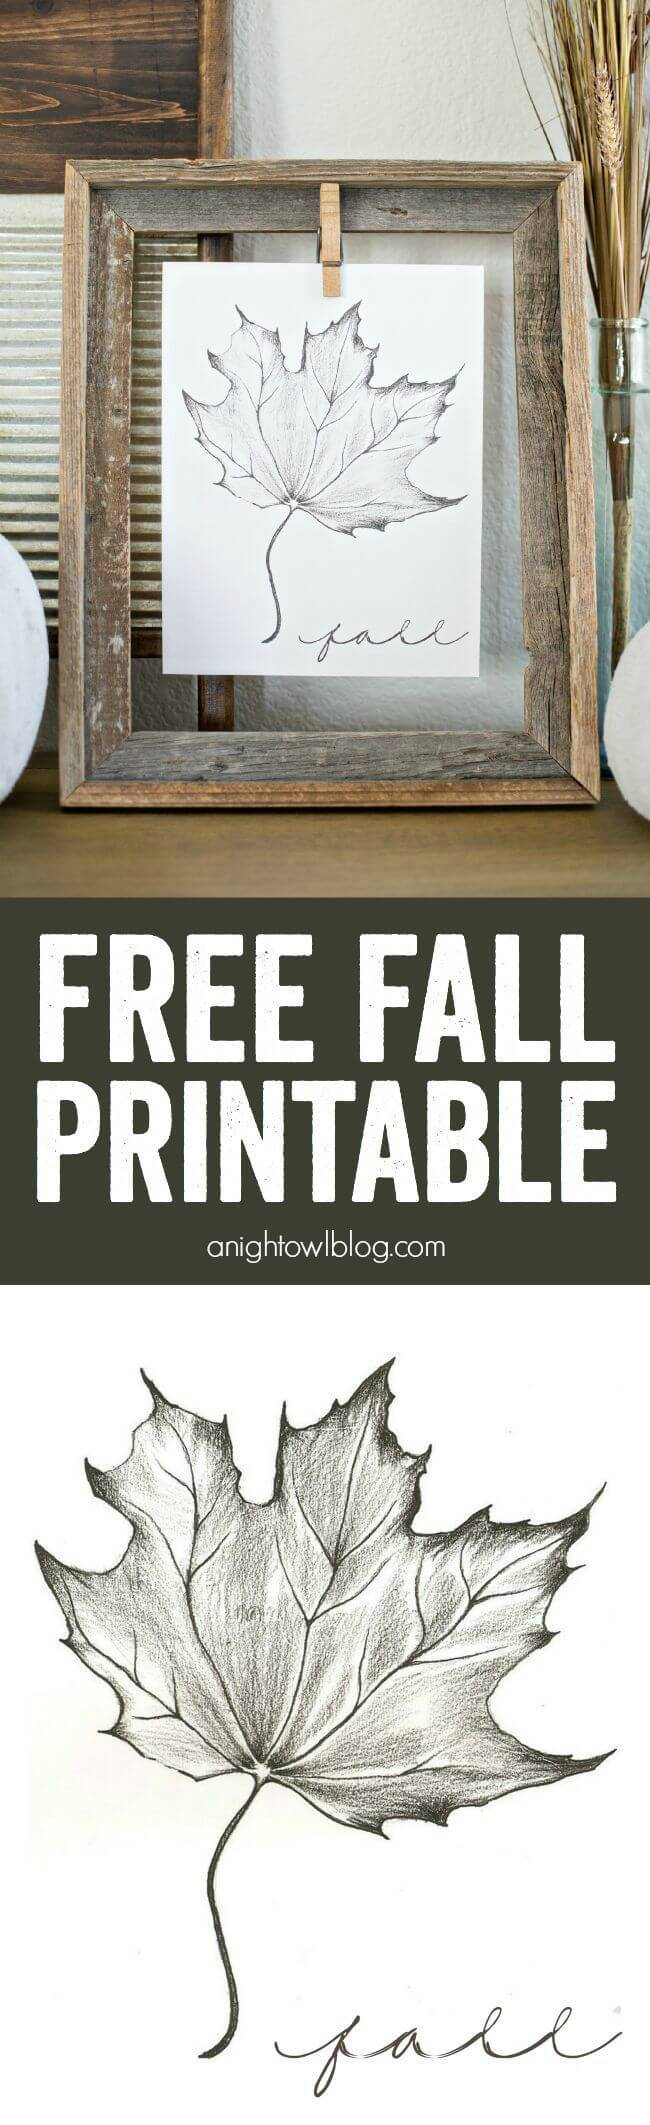 5. Fall printable -   HOME DECORATIONS WITH FALL LEAVES